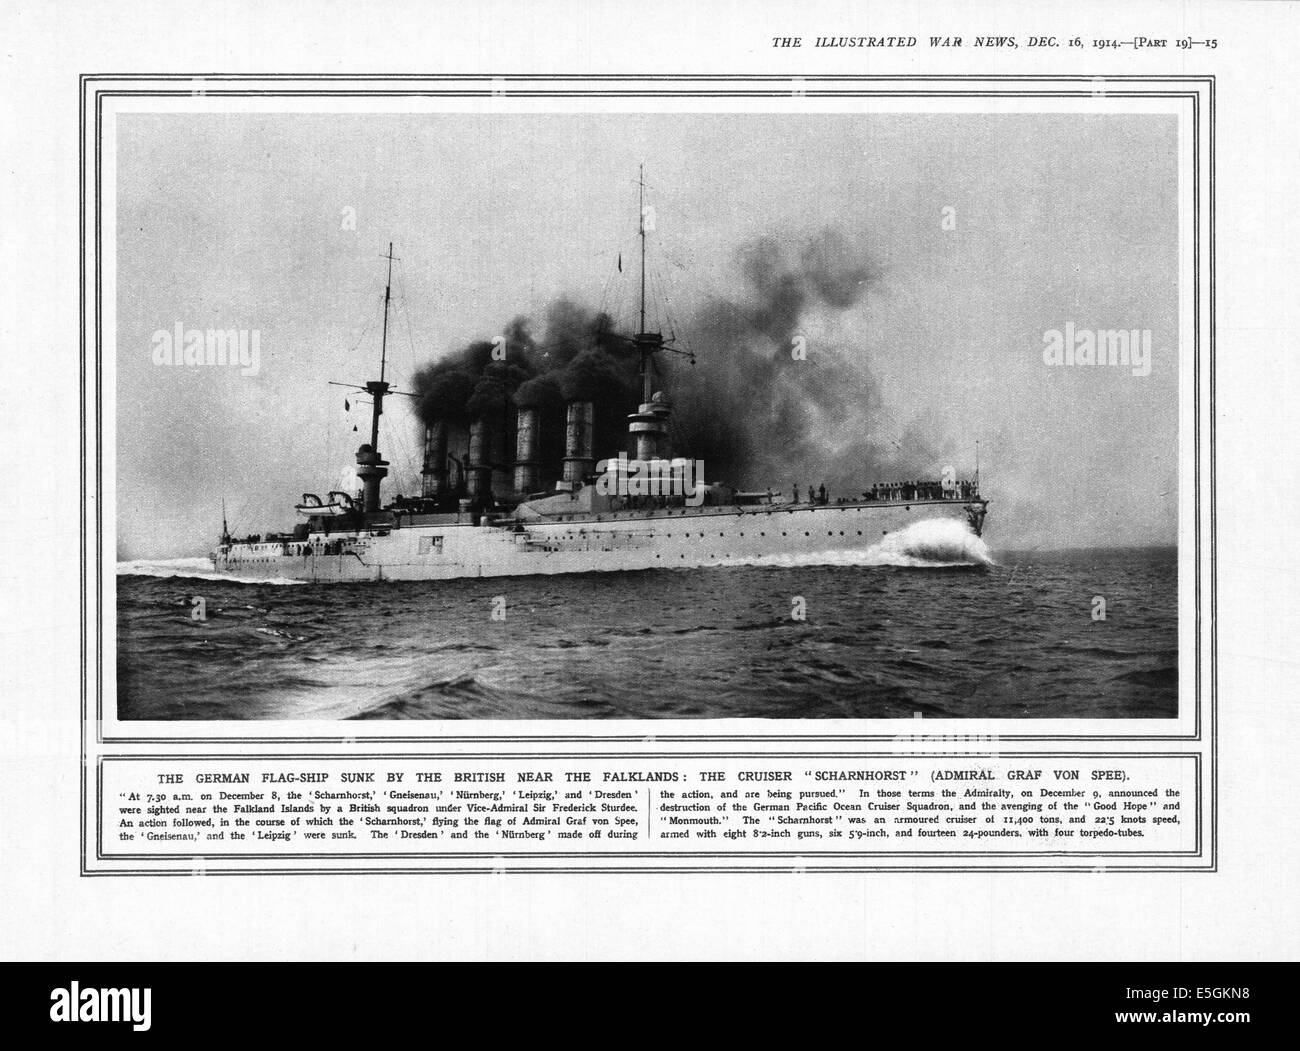 1914 The Illustrated War News pt. 19 (page 15) showing the German battleship Scharnhorst sunk during the Battle - Stock Image